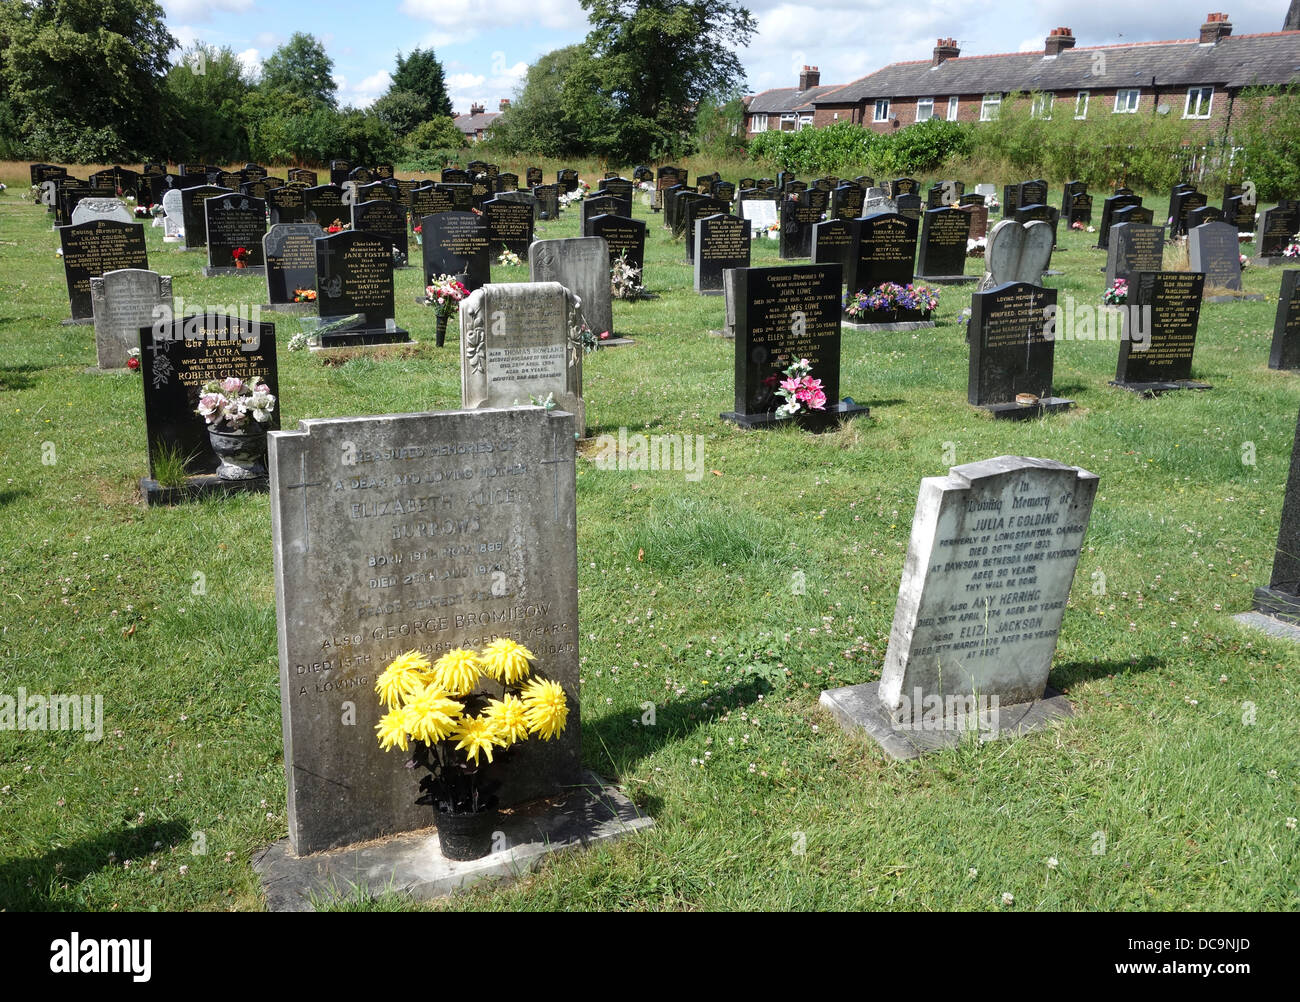 A traditional graveyard in a northern town in england, uk - Stock Image